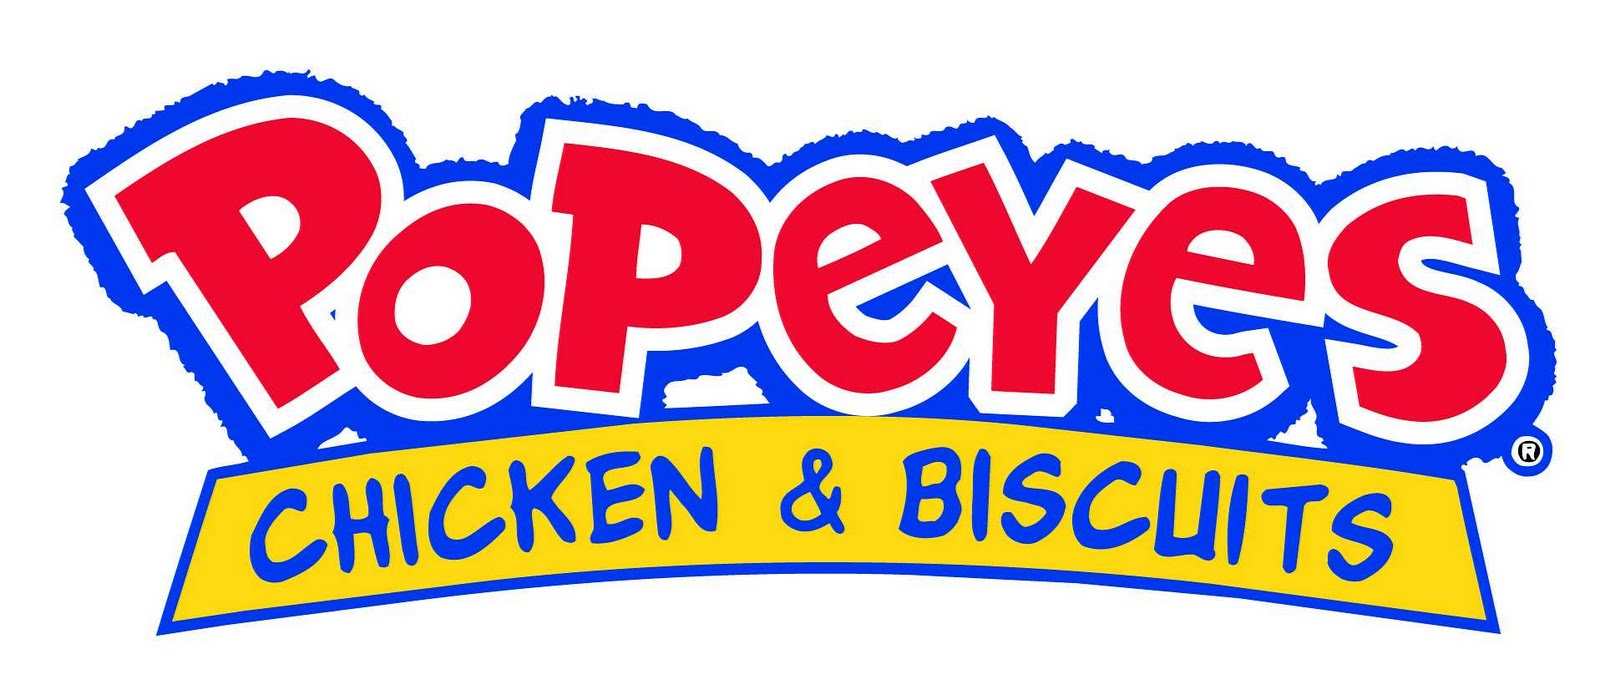 Popeyes Louisiana Kitchen Logo Marketing In Mississaugajoshua Onwugbonu On Prezi